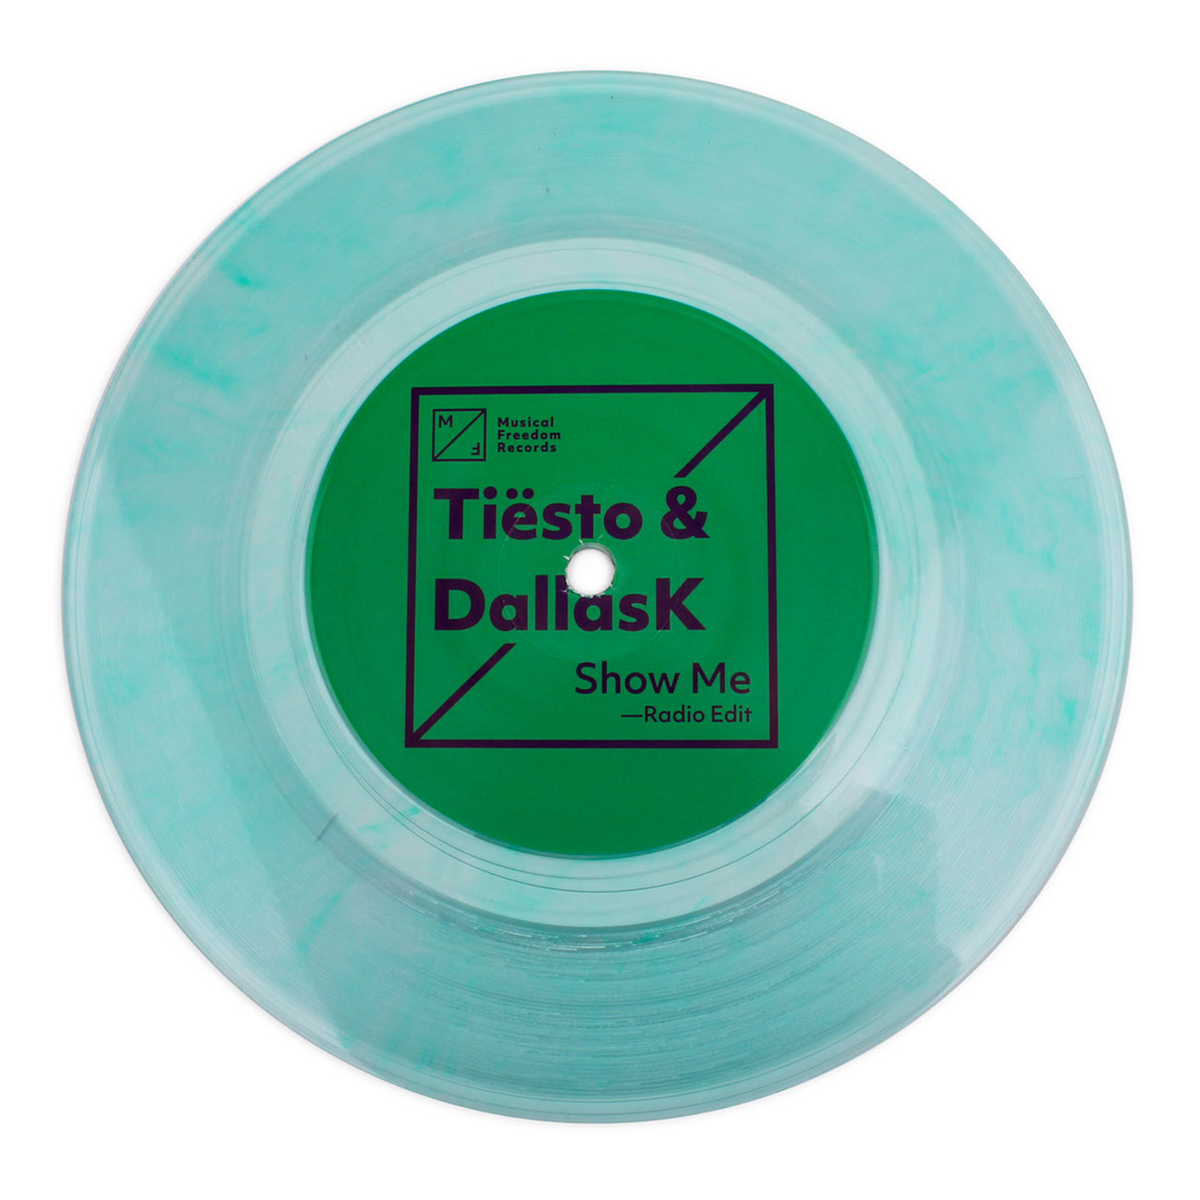 "Tiësto & DallasK 'Show Me' Single - 7"" Vinyl"